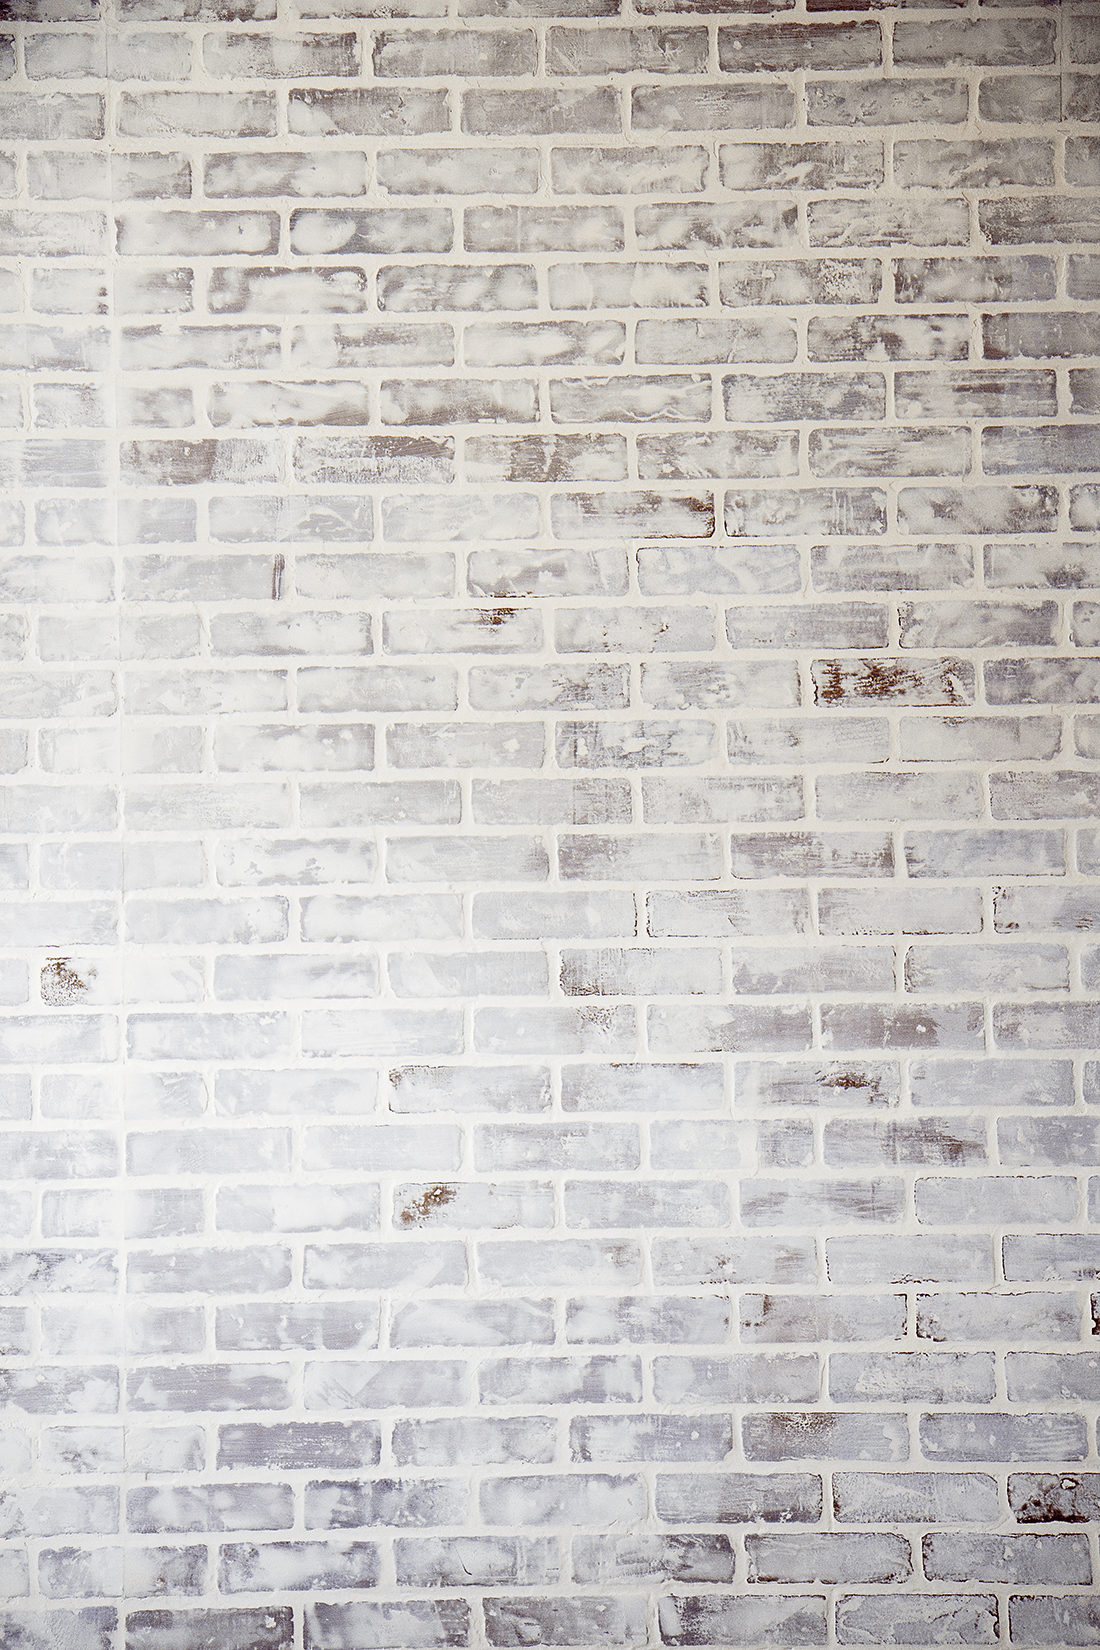 Diy Faux Brick Wall Easy Faux Brick Wall Using Brick Paneling Diy Faux Brick Wall Faux Brick Walls Diy Brick Wall